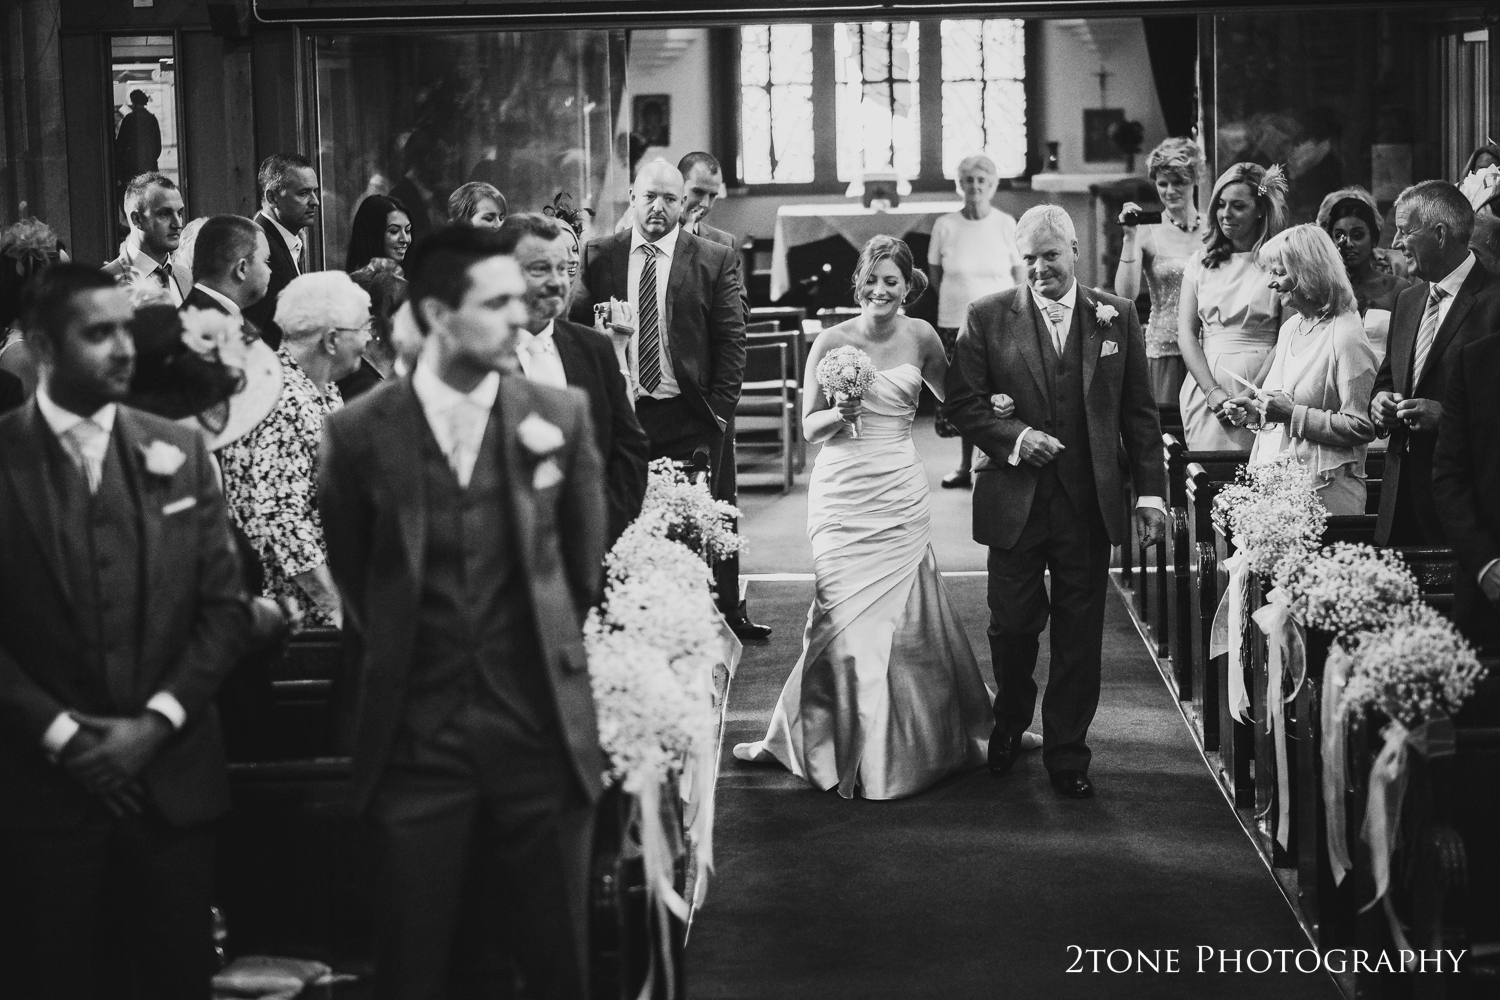 With his daughter on his arm, Laura's dad lead her down the aisle, a proud moment in any fathers life.